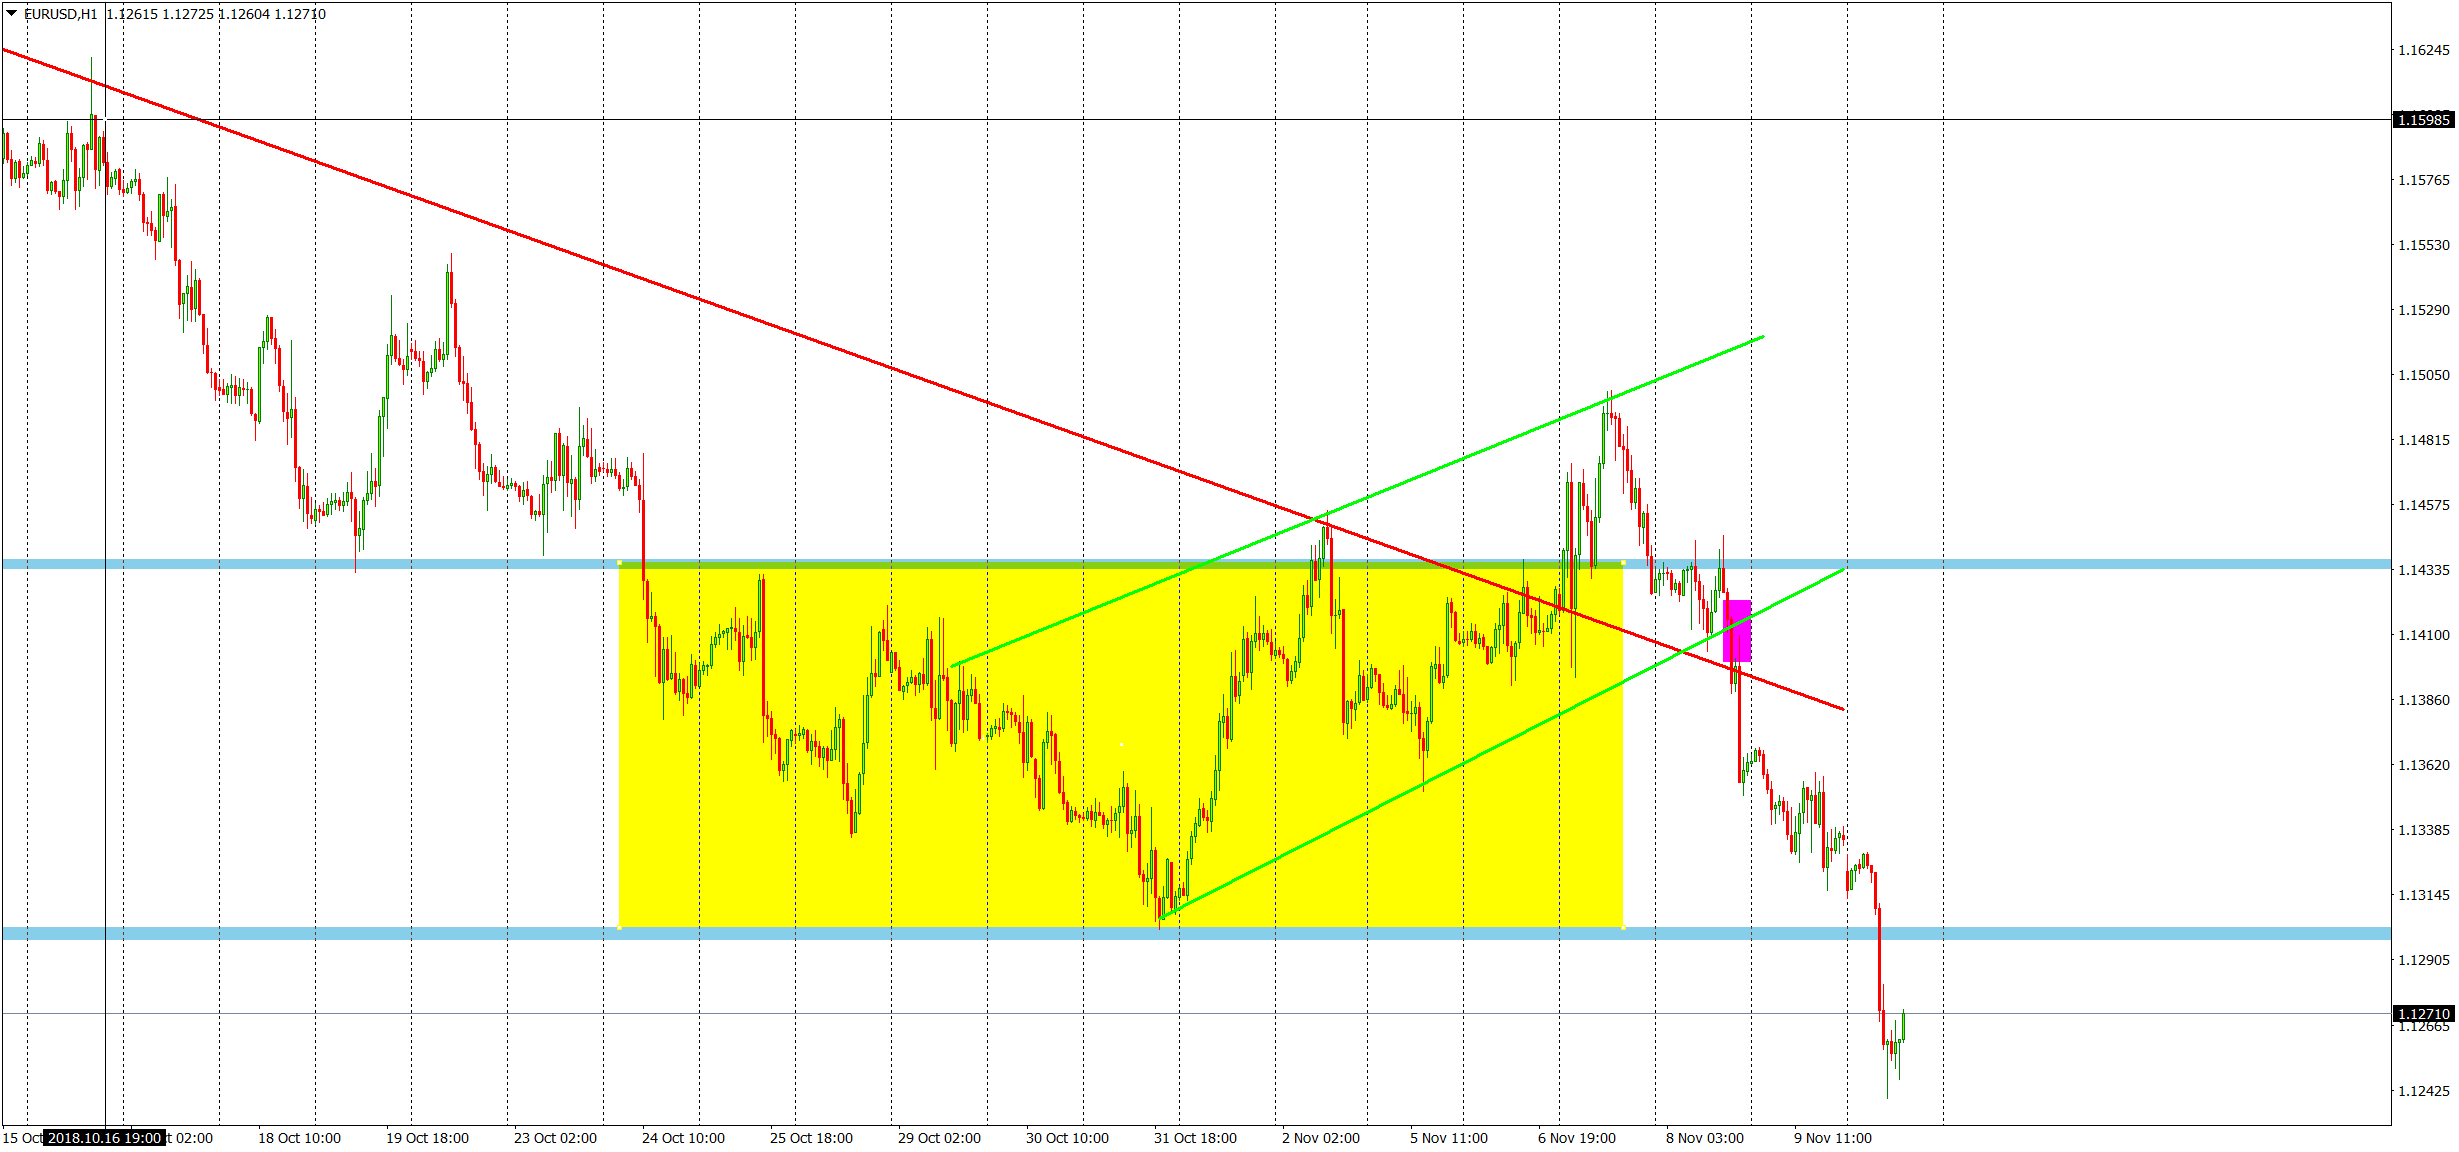 EURUSD breaks major horizontal support EURUSDH1_1211_5be995b81055e